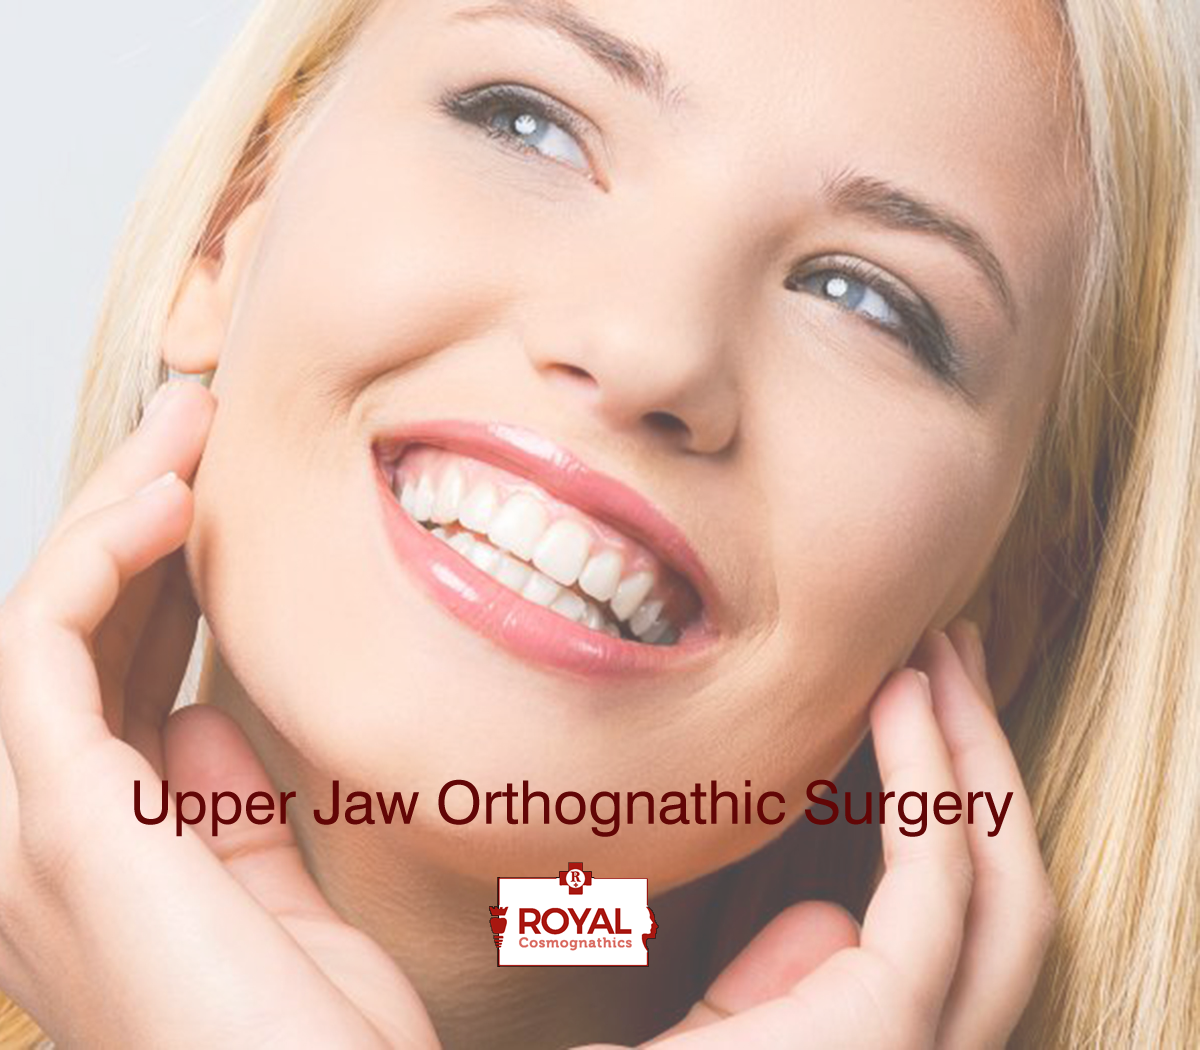 Upper Jaw Surgery